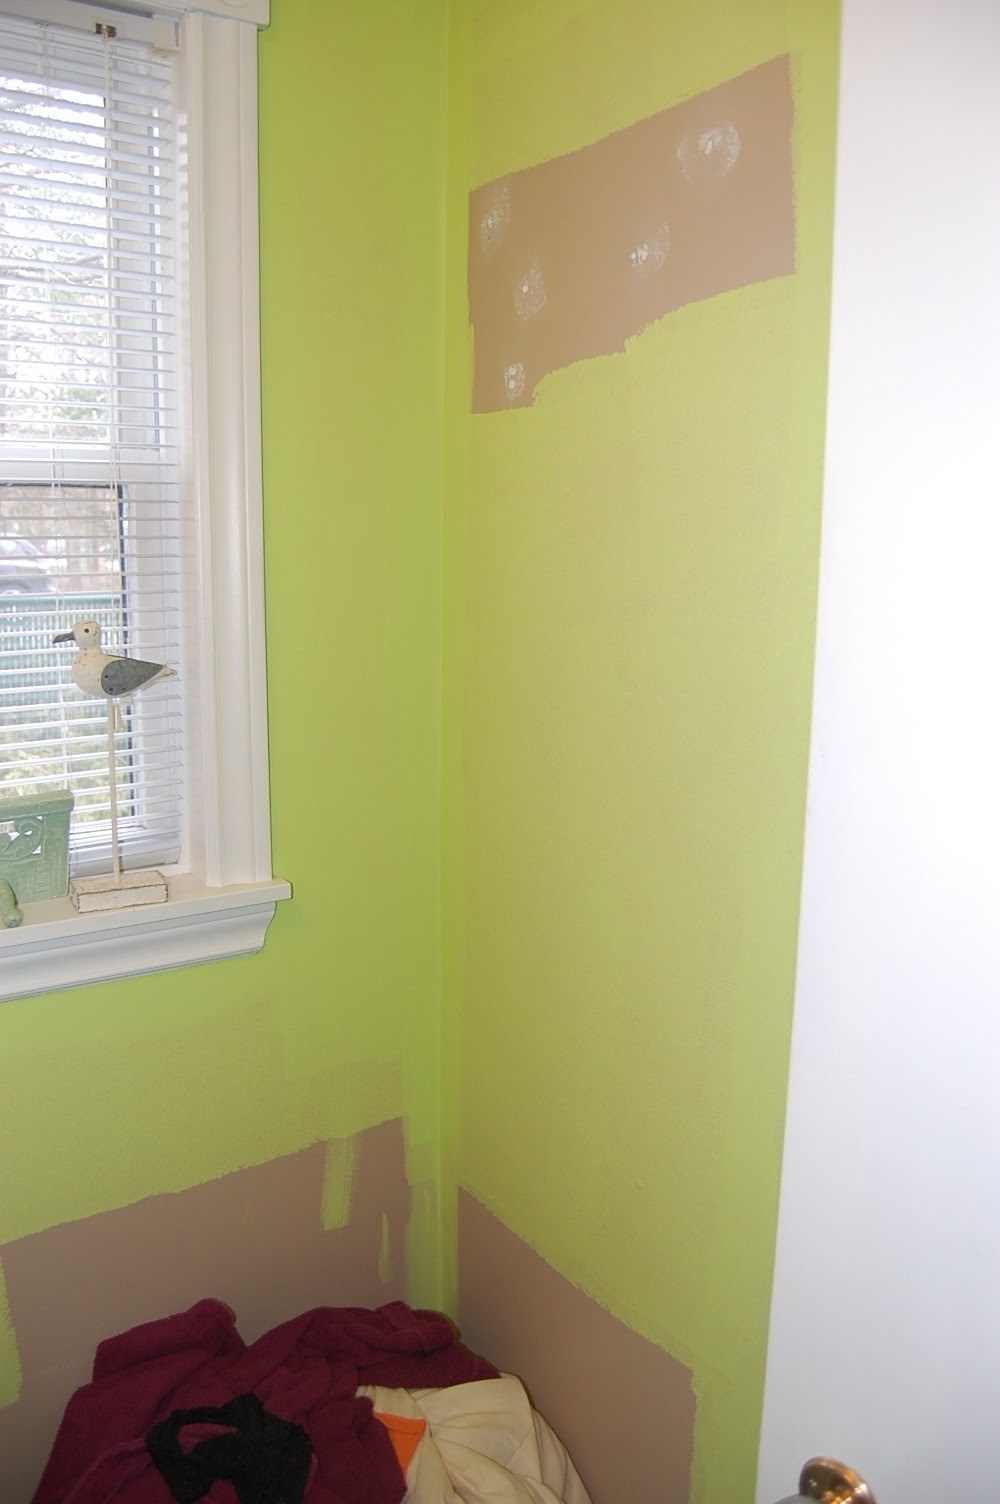 a green wall needs addition decor which is Wall Doctor Beadboard Wallpaper to get prettier look